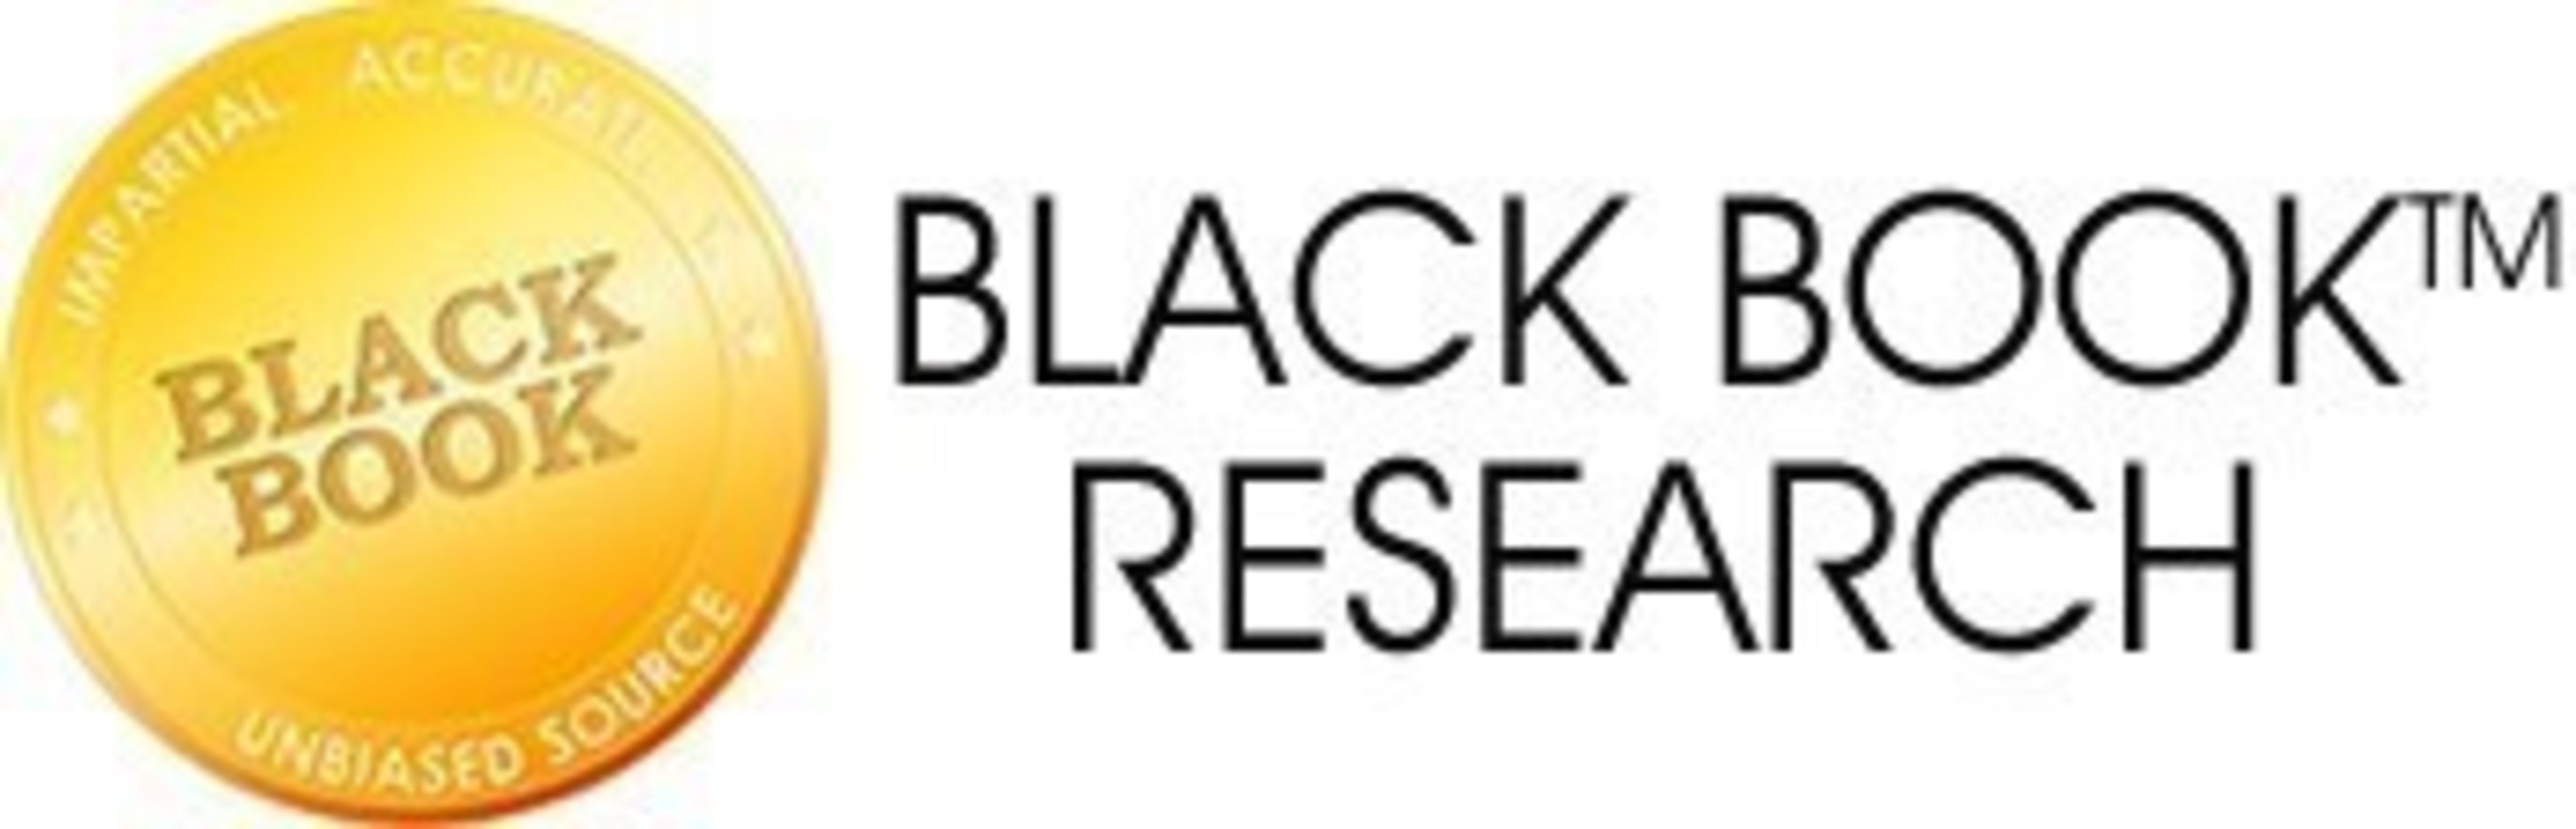 Outsourced HIM and Computer-Assisted Coding Seen as Panacea for Regaining Lost Productivities and Post ICD-10 Payments, Says Black Book Hospital Survey